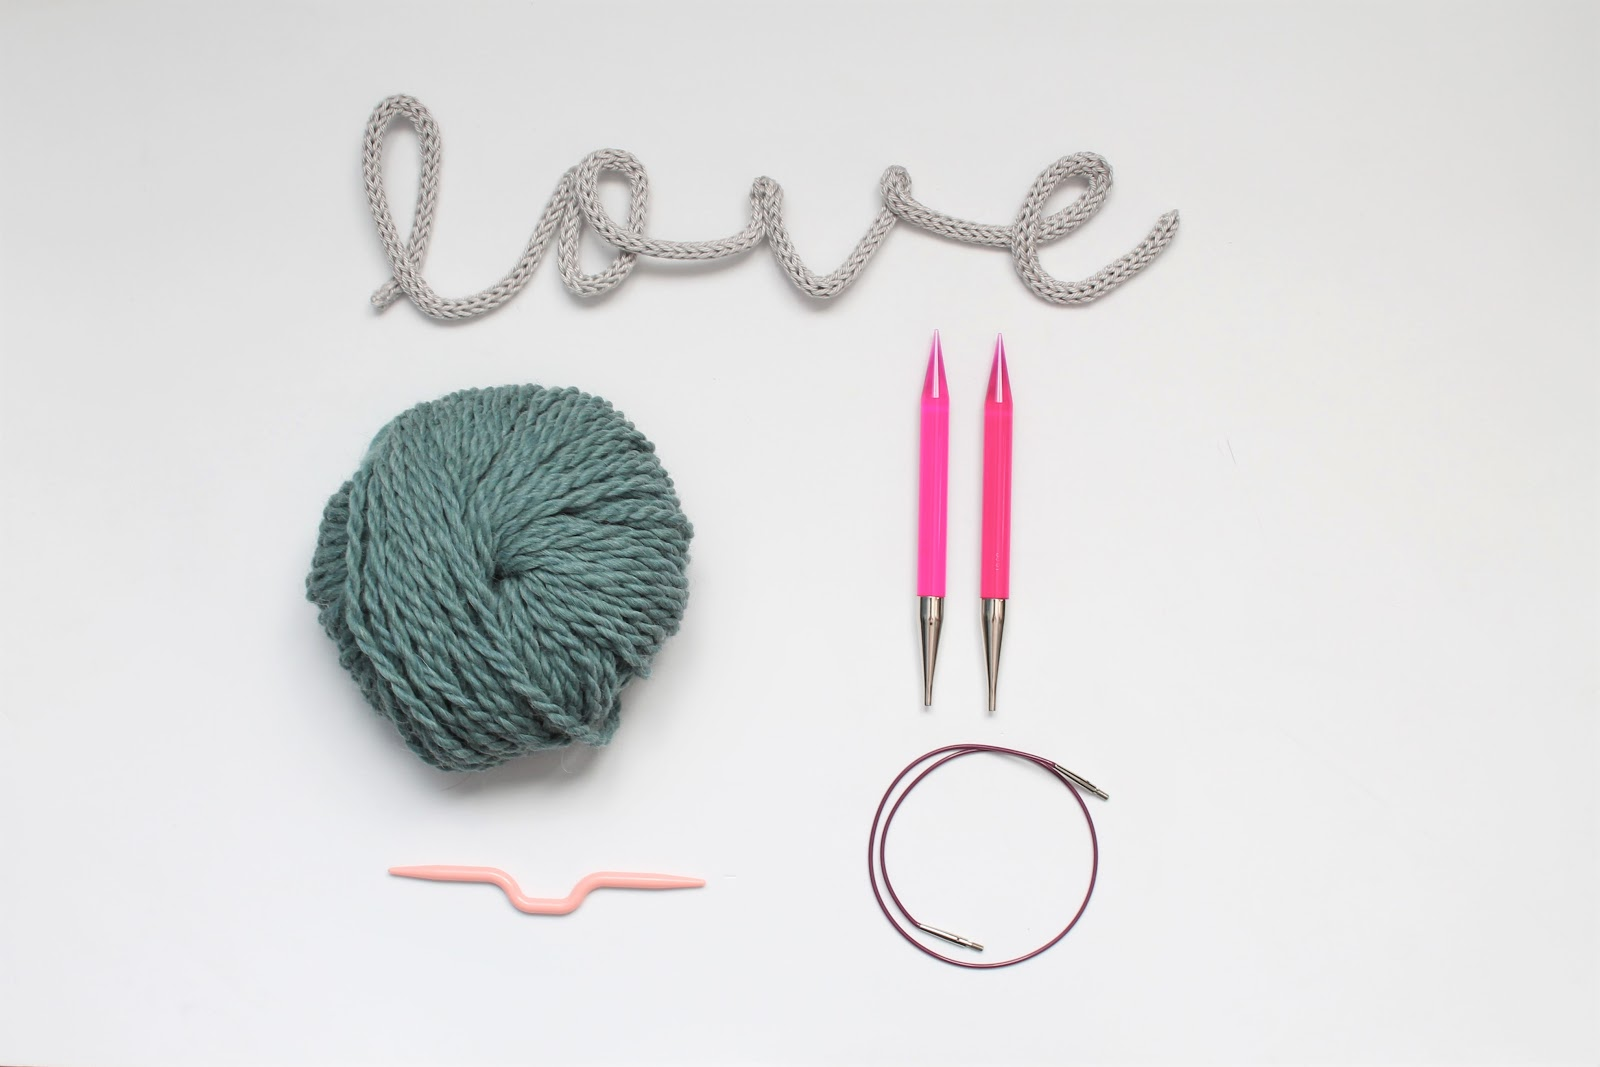 Knitting archivos - Página 2 de 9 - Handbox Craft Lovers | Comunidad ...